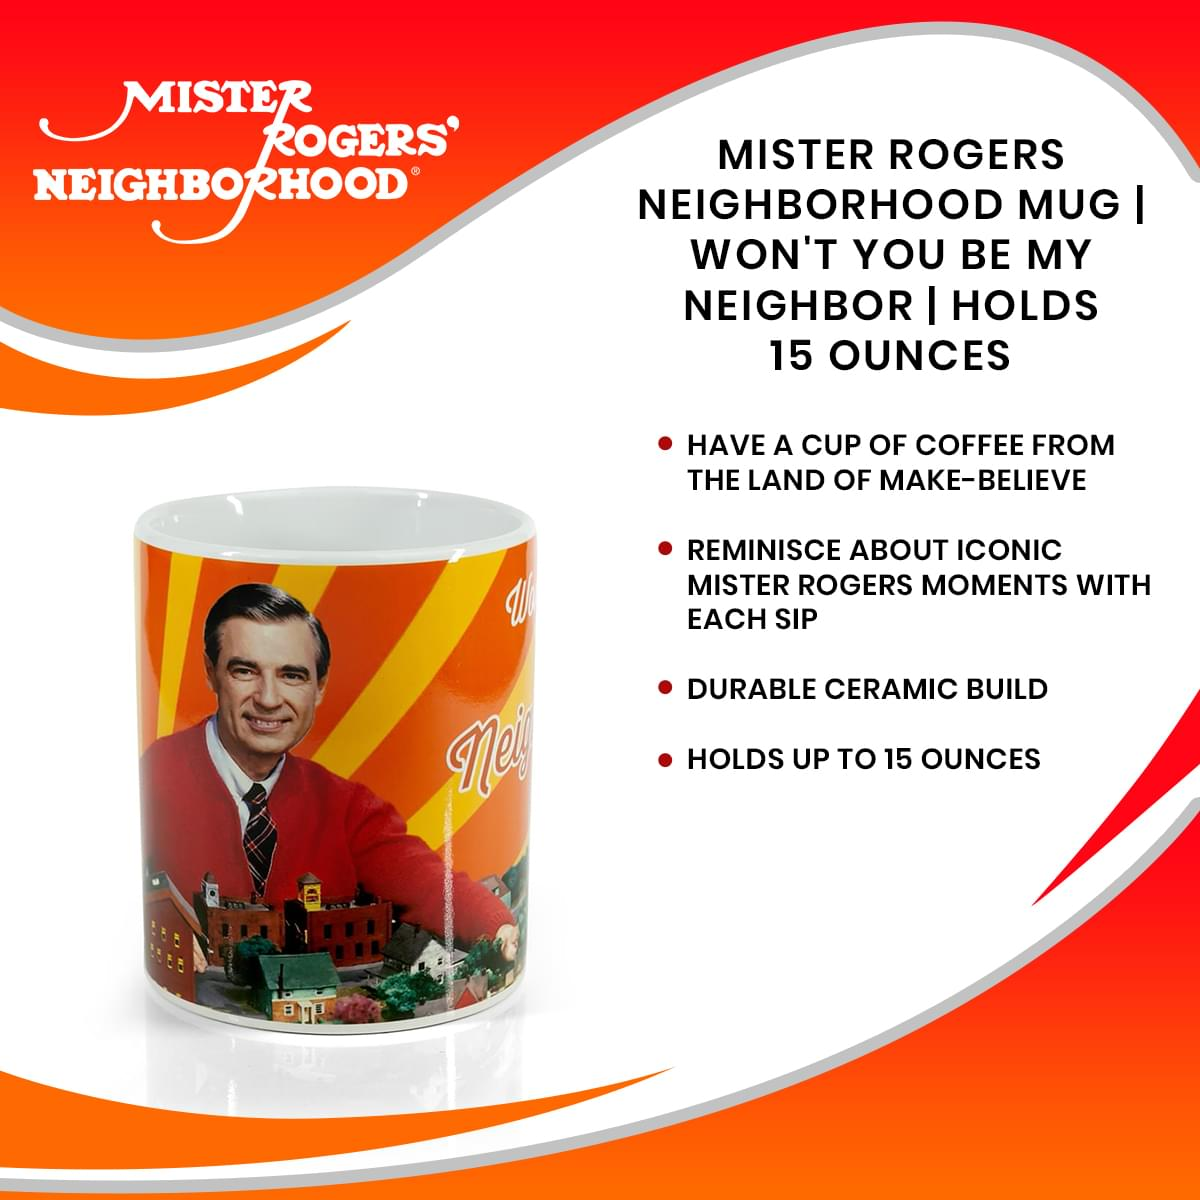 Mister Rogers Neighborhood Mug | Won't You Be My Neighbor | Holds 15 Ounces